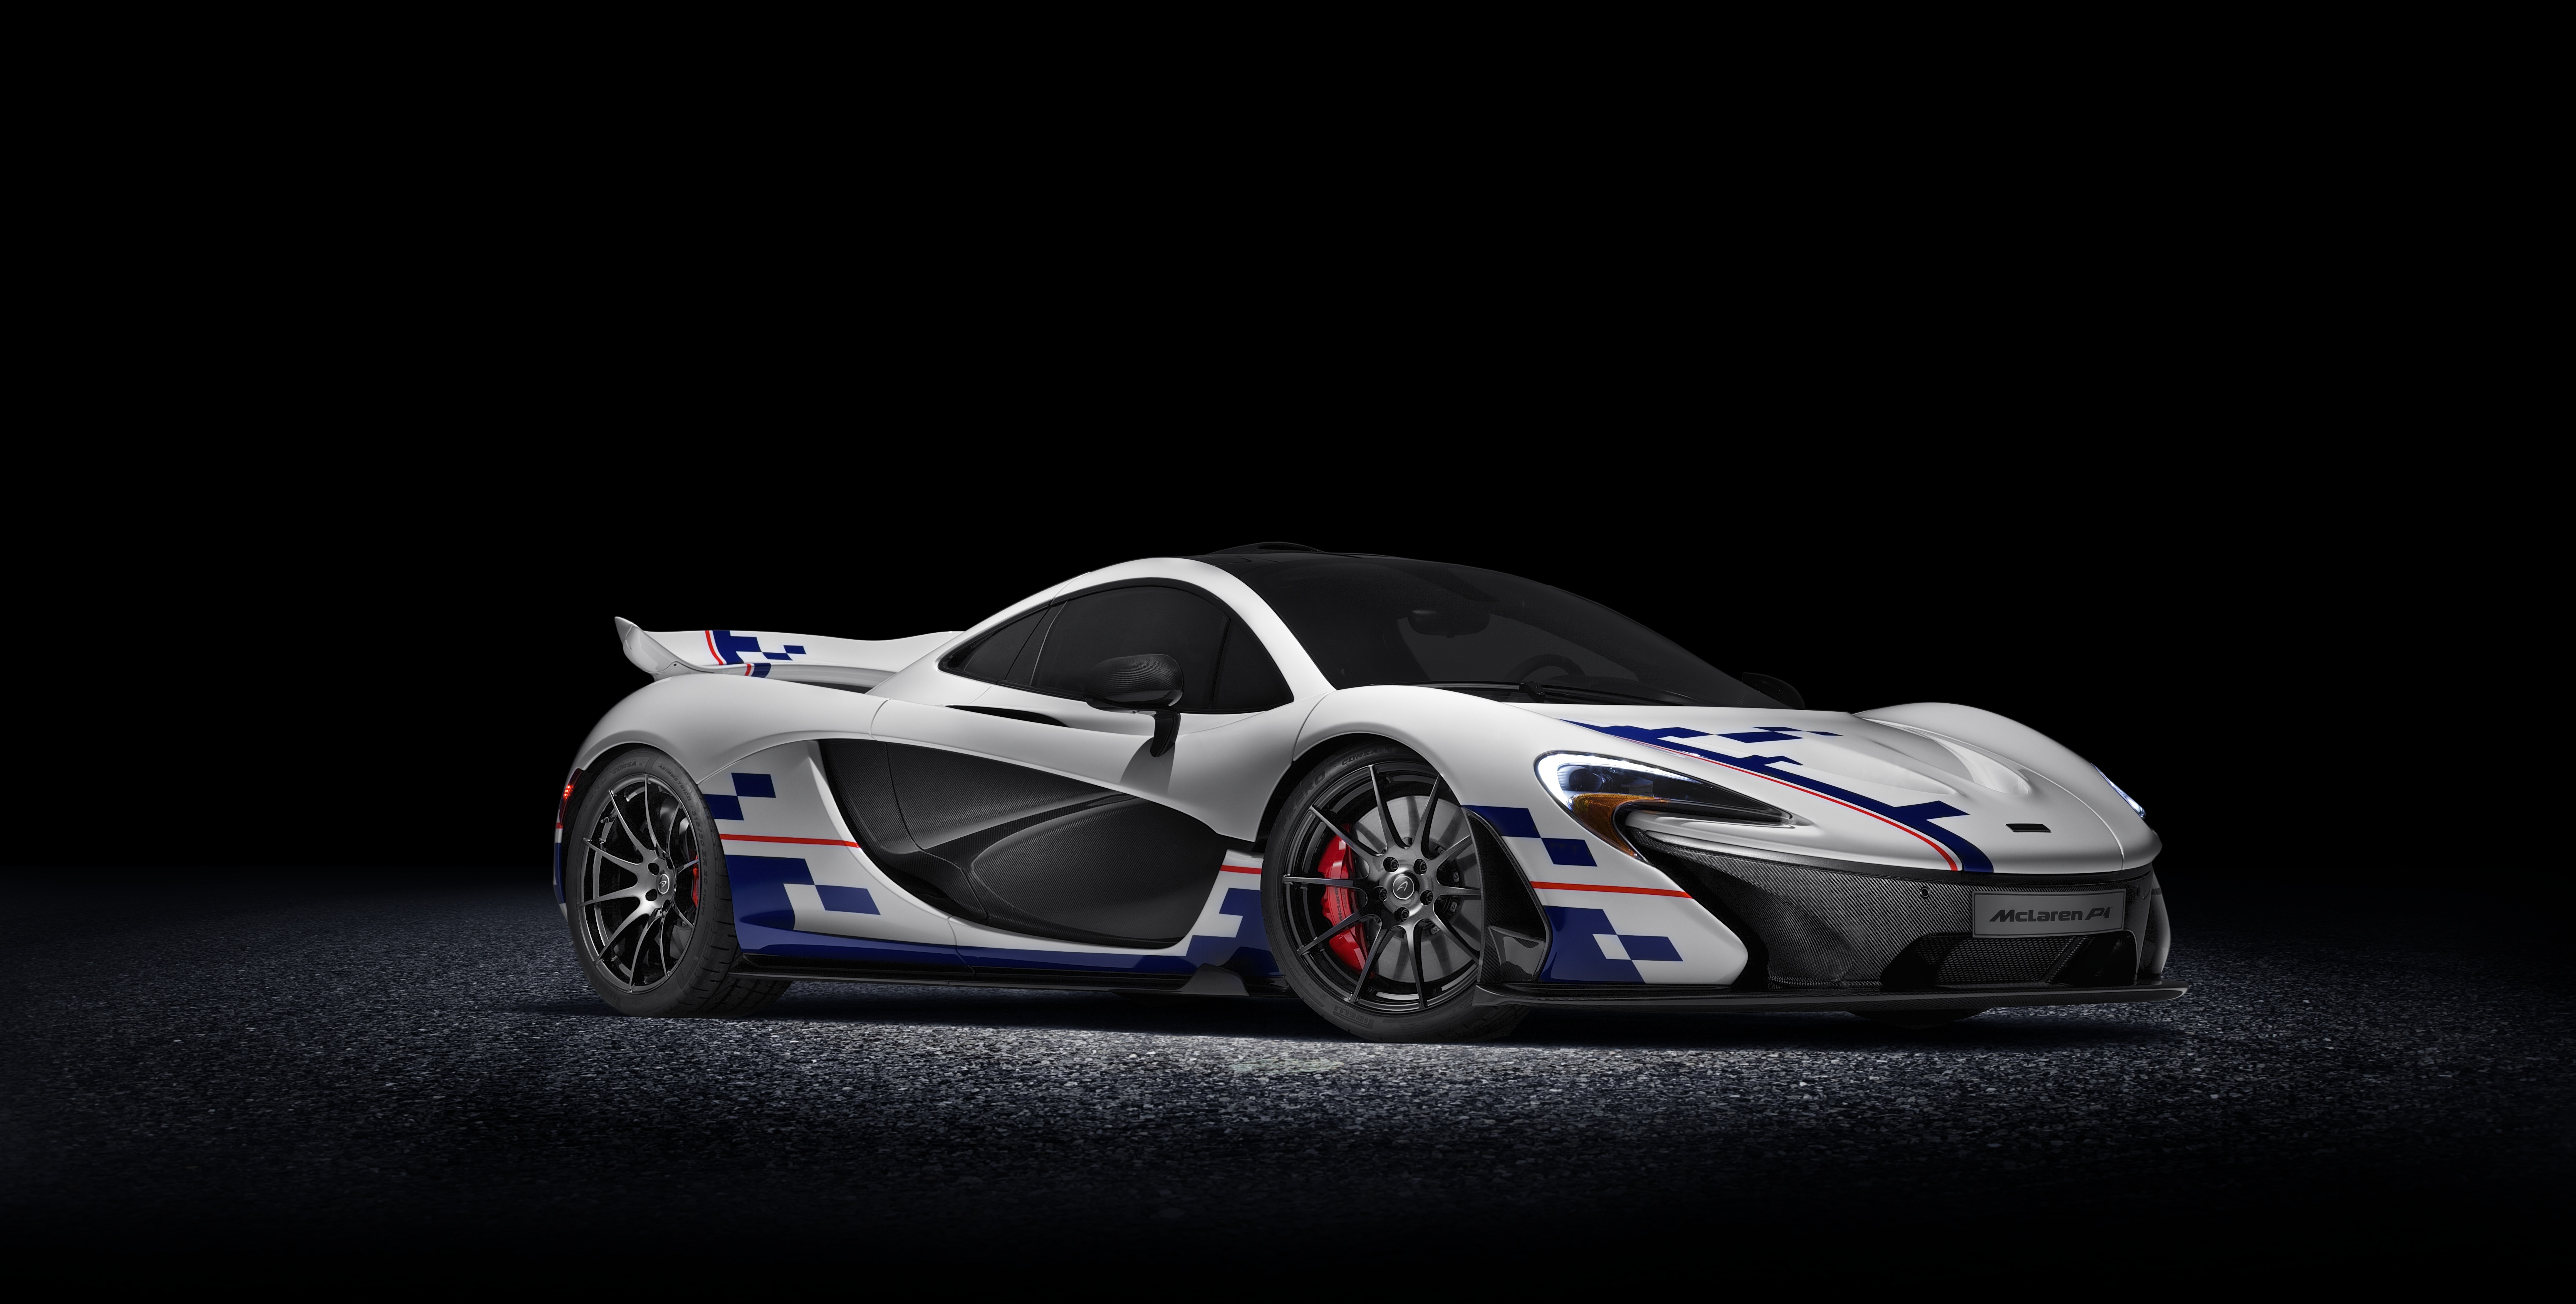 Mclaren P1 Gtr Logo >> McLaren F1 « CLIVE COULDWELL: Formula One as it is…